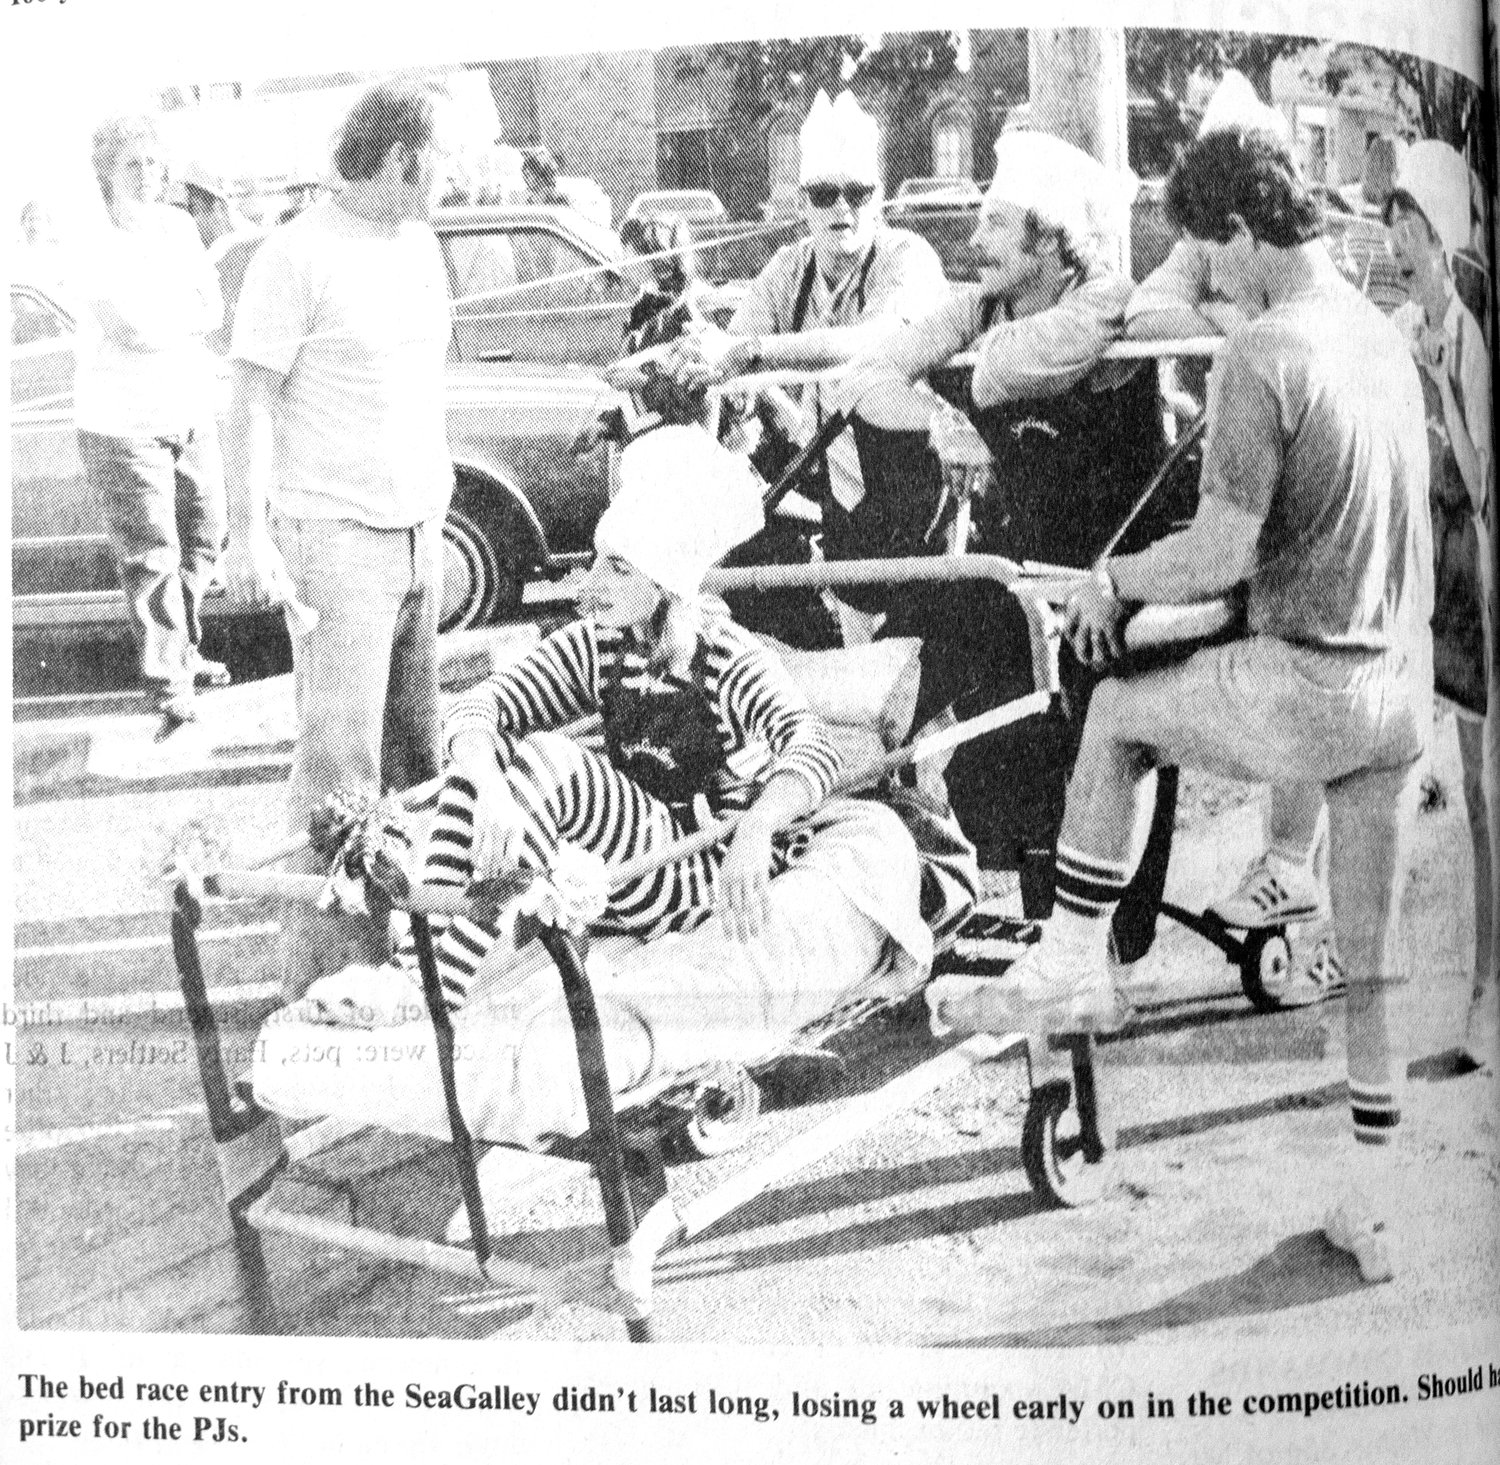 One participant in the 1985 bed race competition. Original Leader caption: The bed race entry from the SeaGalley didn't last long, losing a wheel early in the competition.